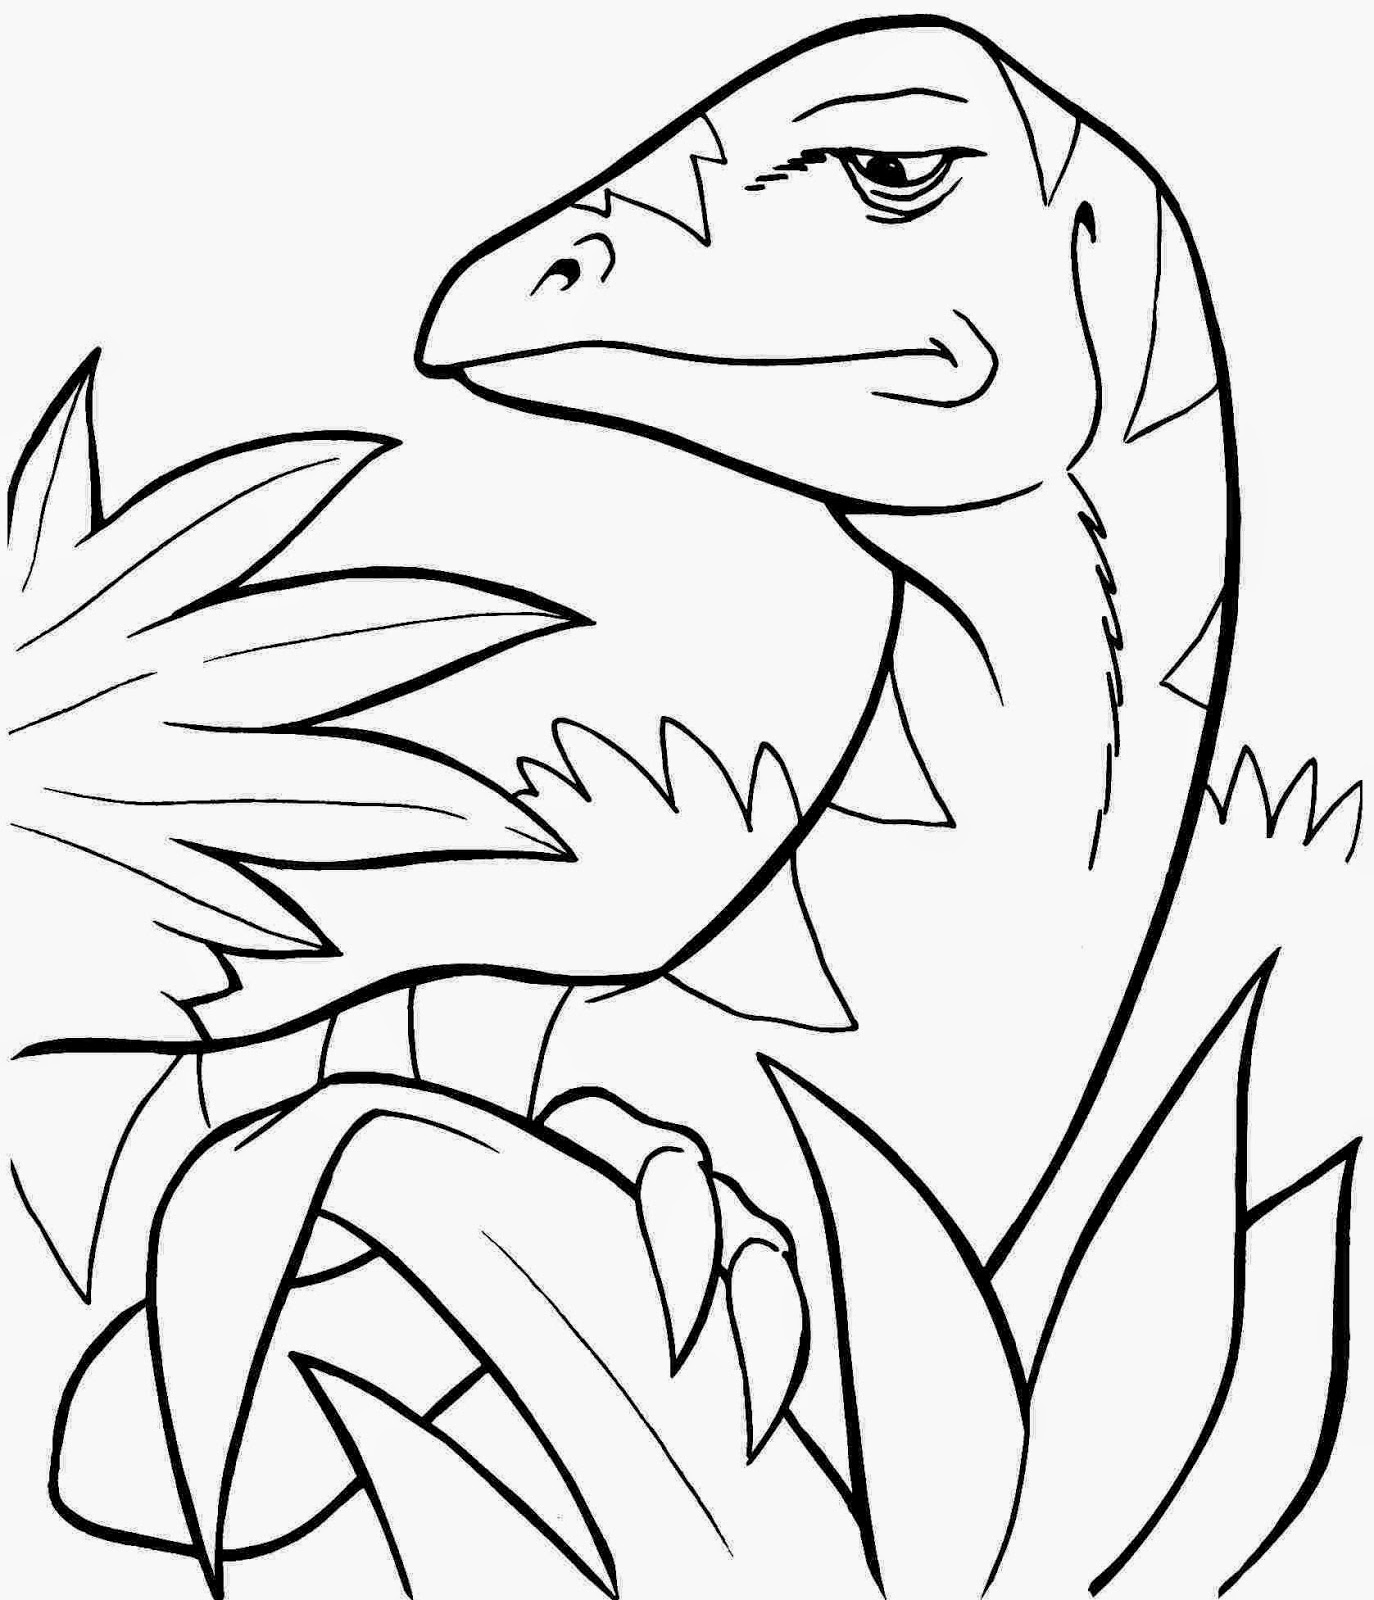 dinosaur coloring pages printable free 10 best images of kids dinosaur activity worksheets how dinosaur free printable pages coloring